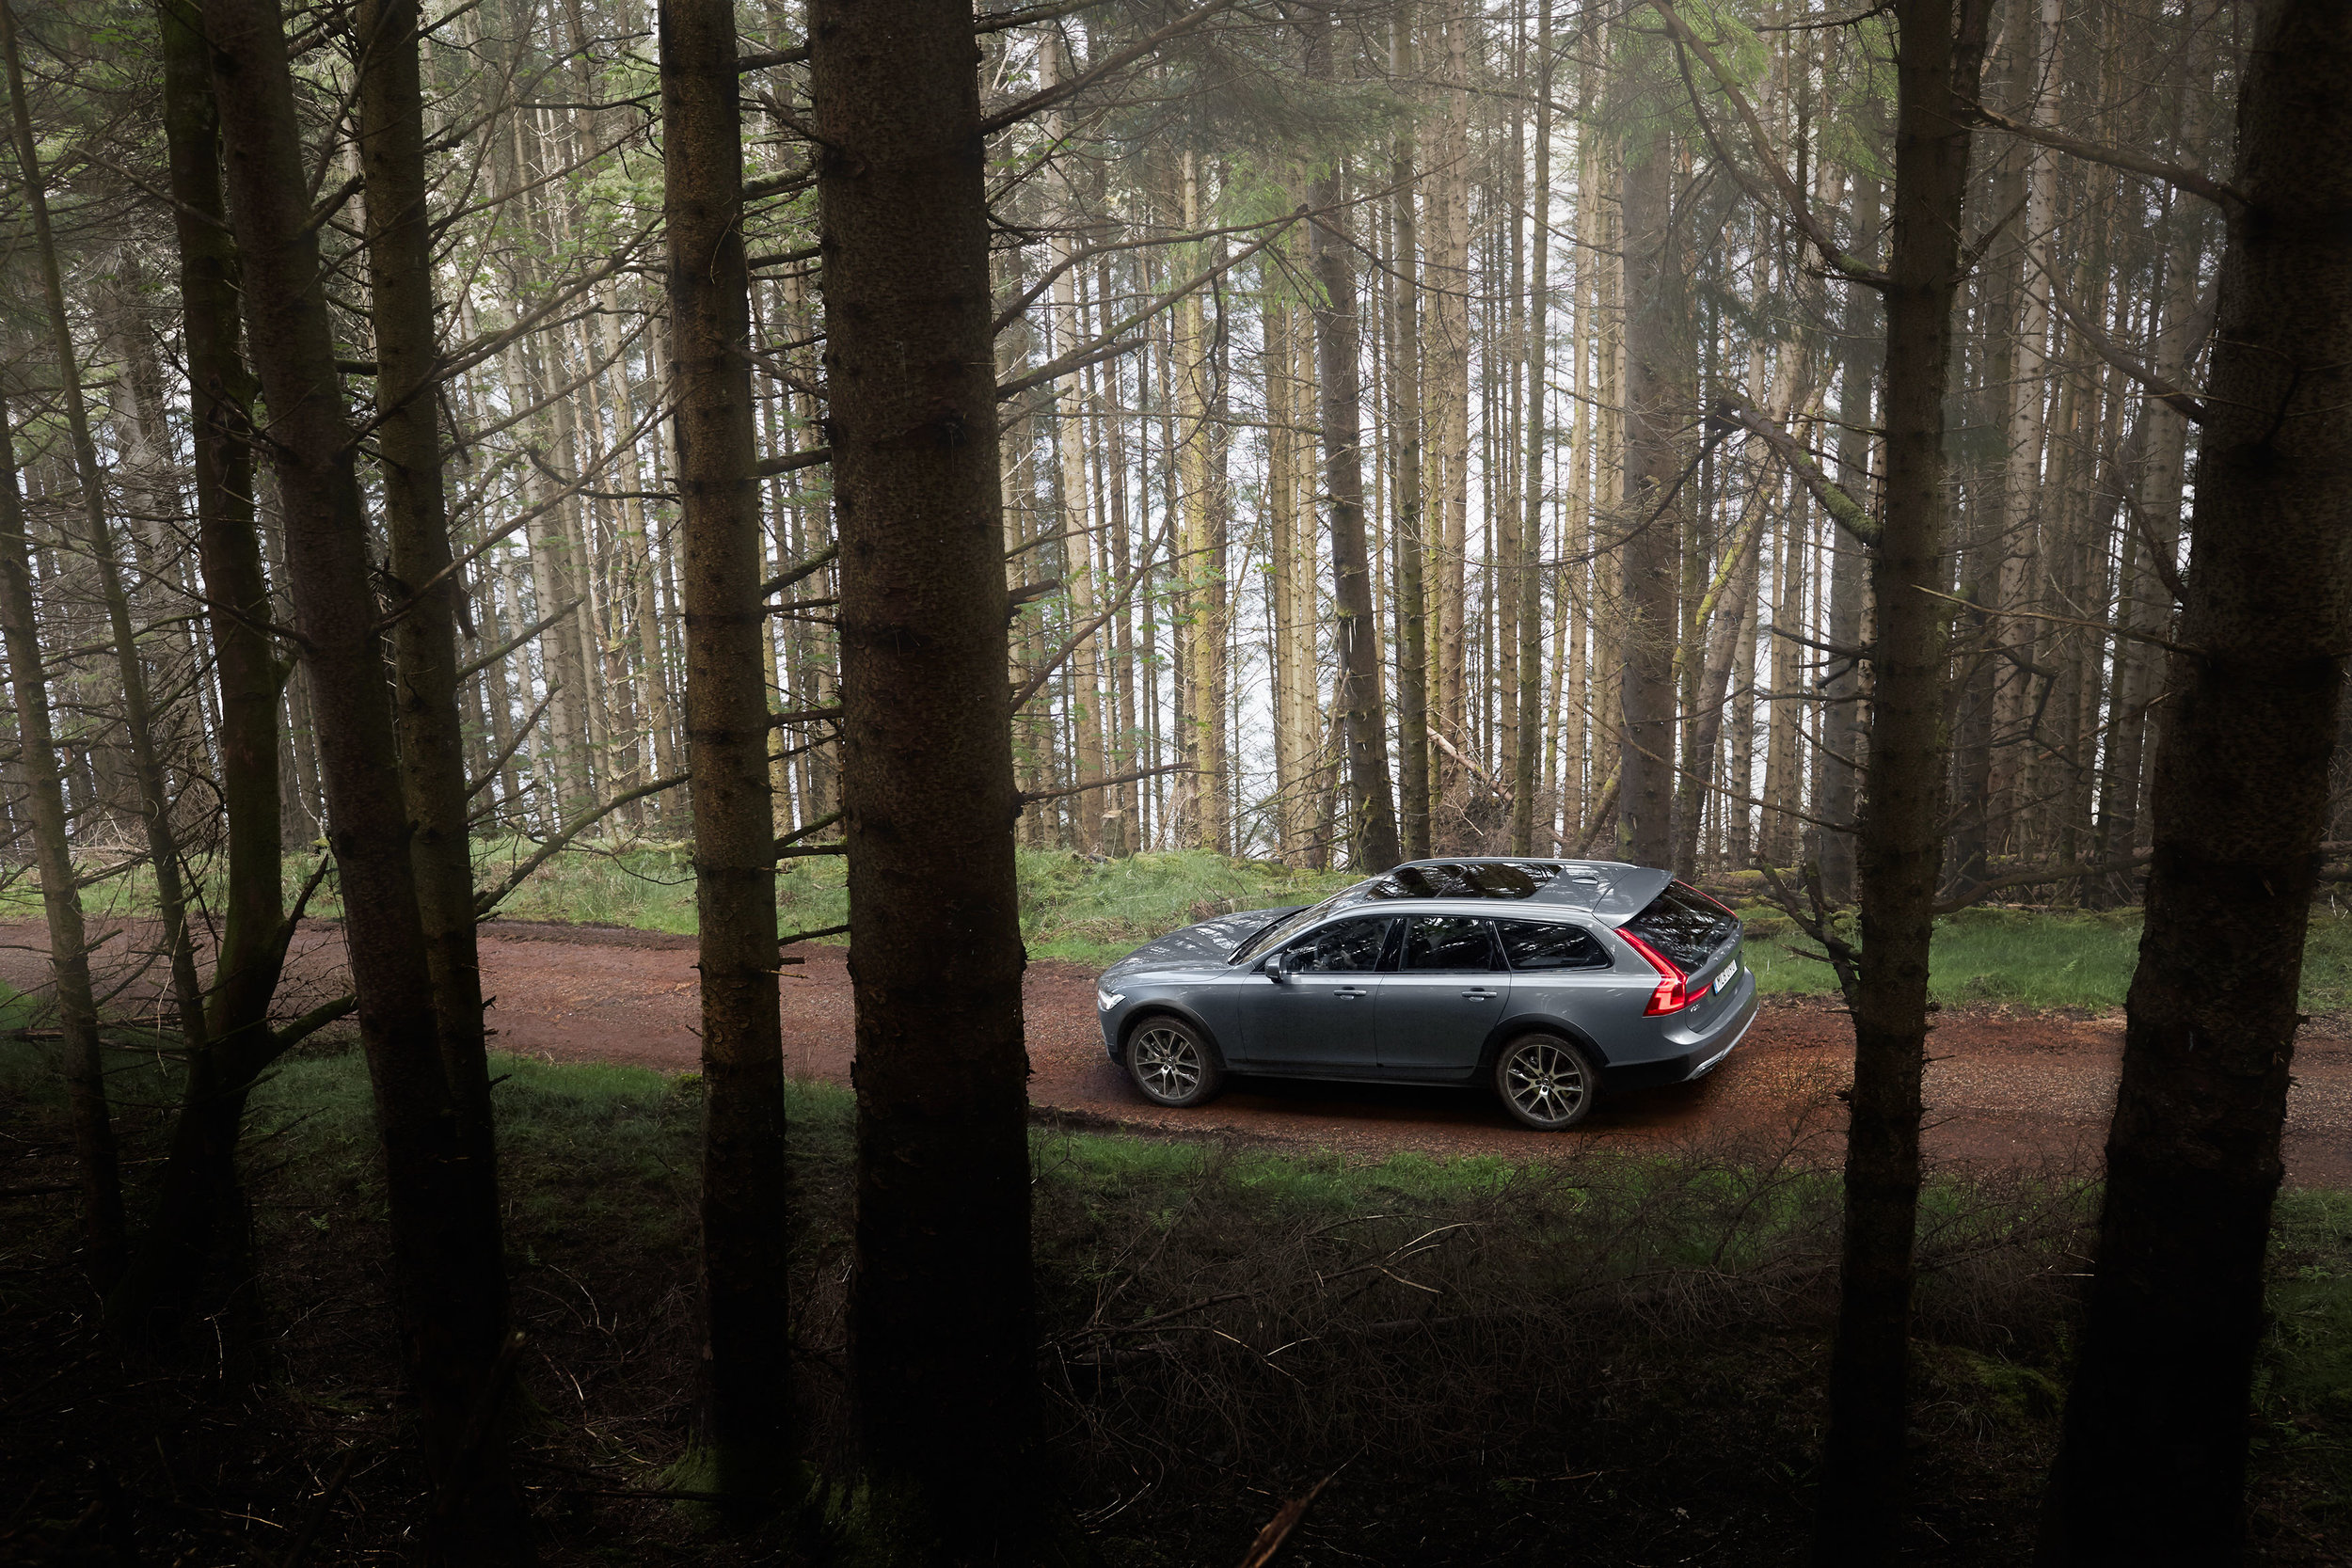 VOLVO V90 -  LS PRODUCTIONS / MARTIN SWIFT FOR REDWOOD